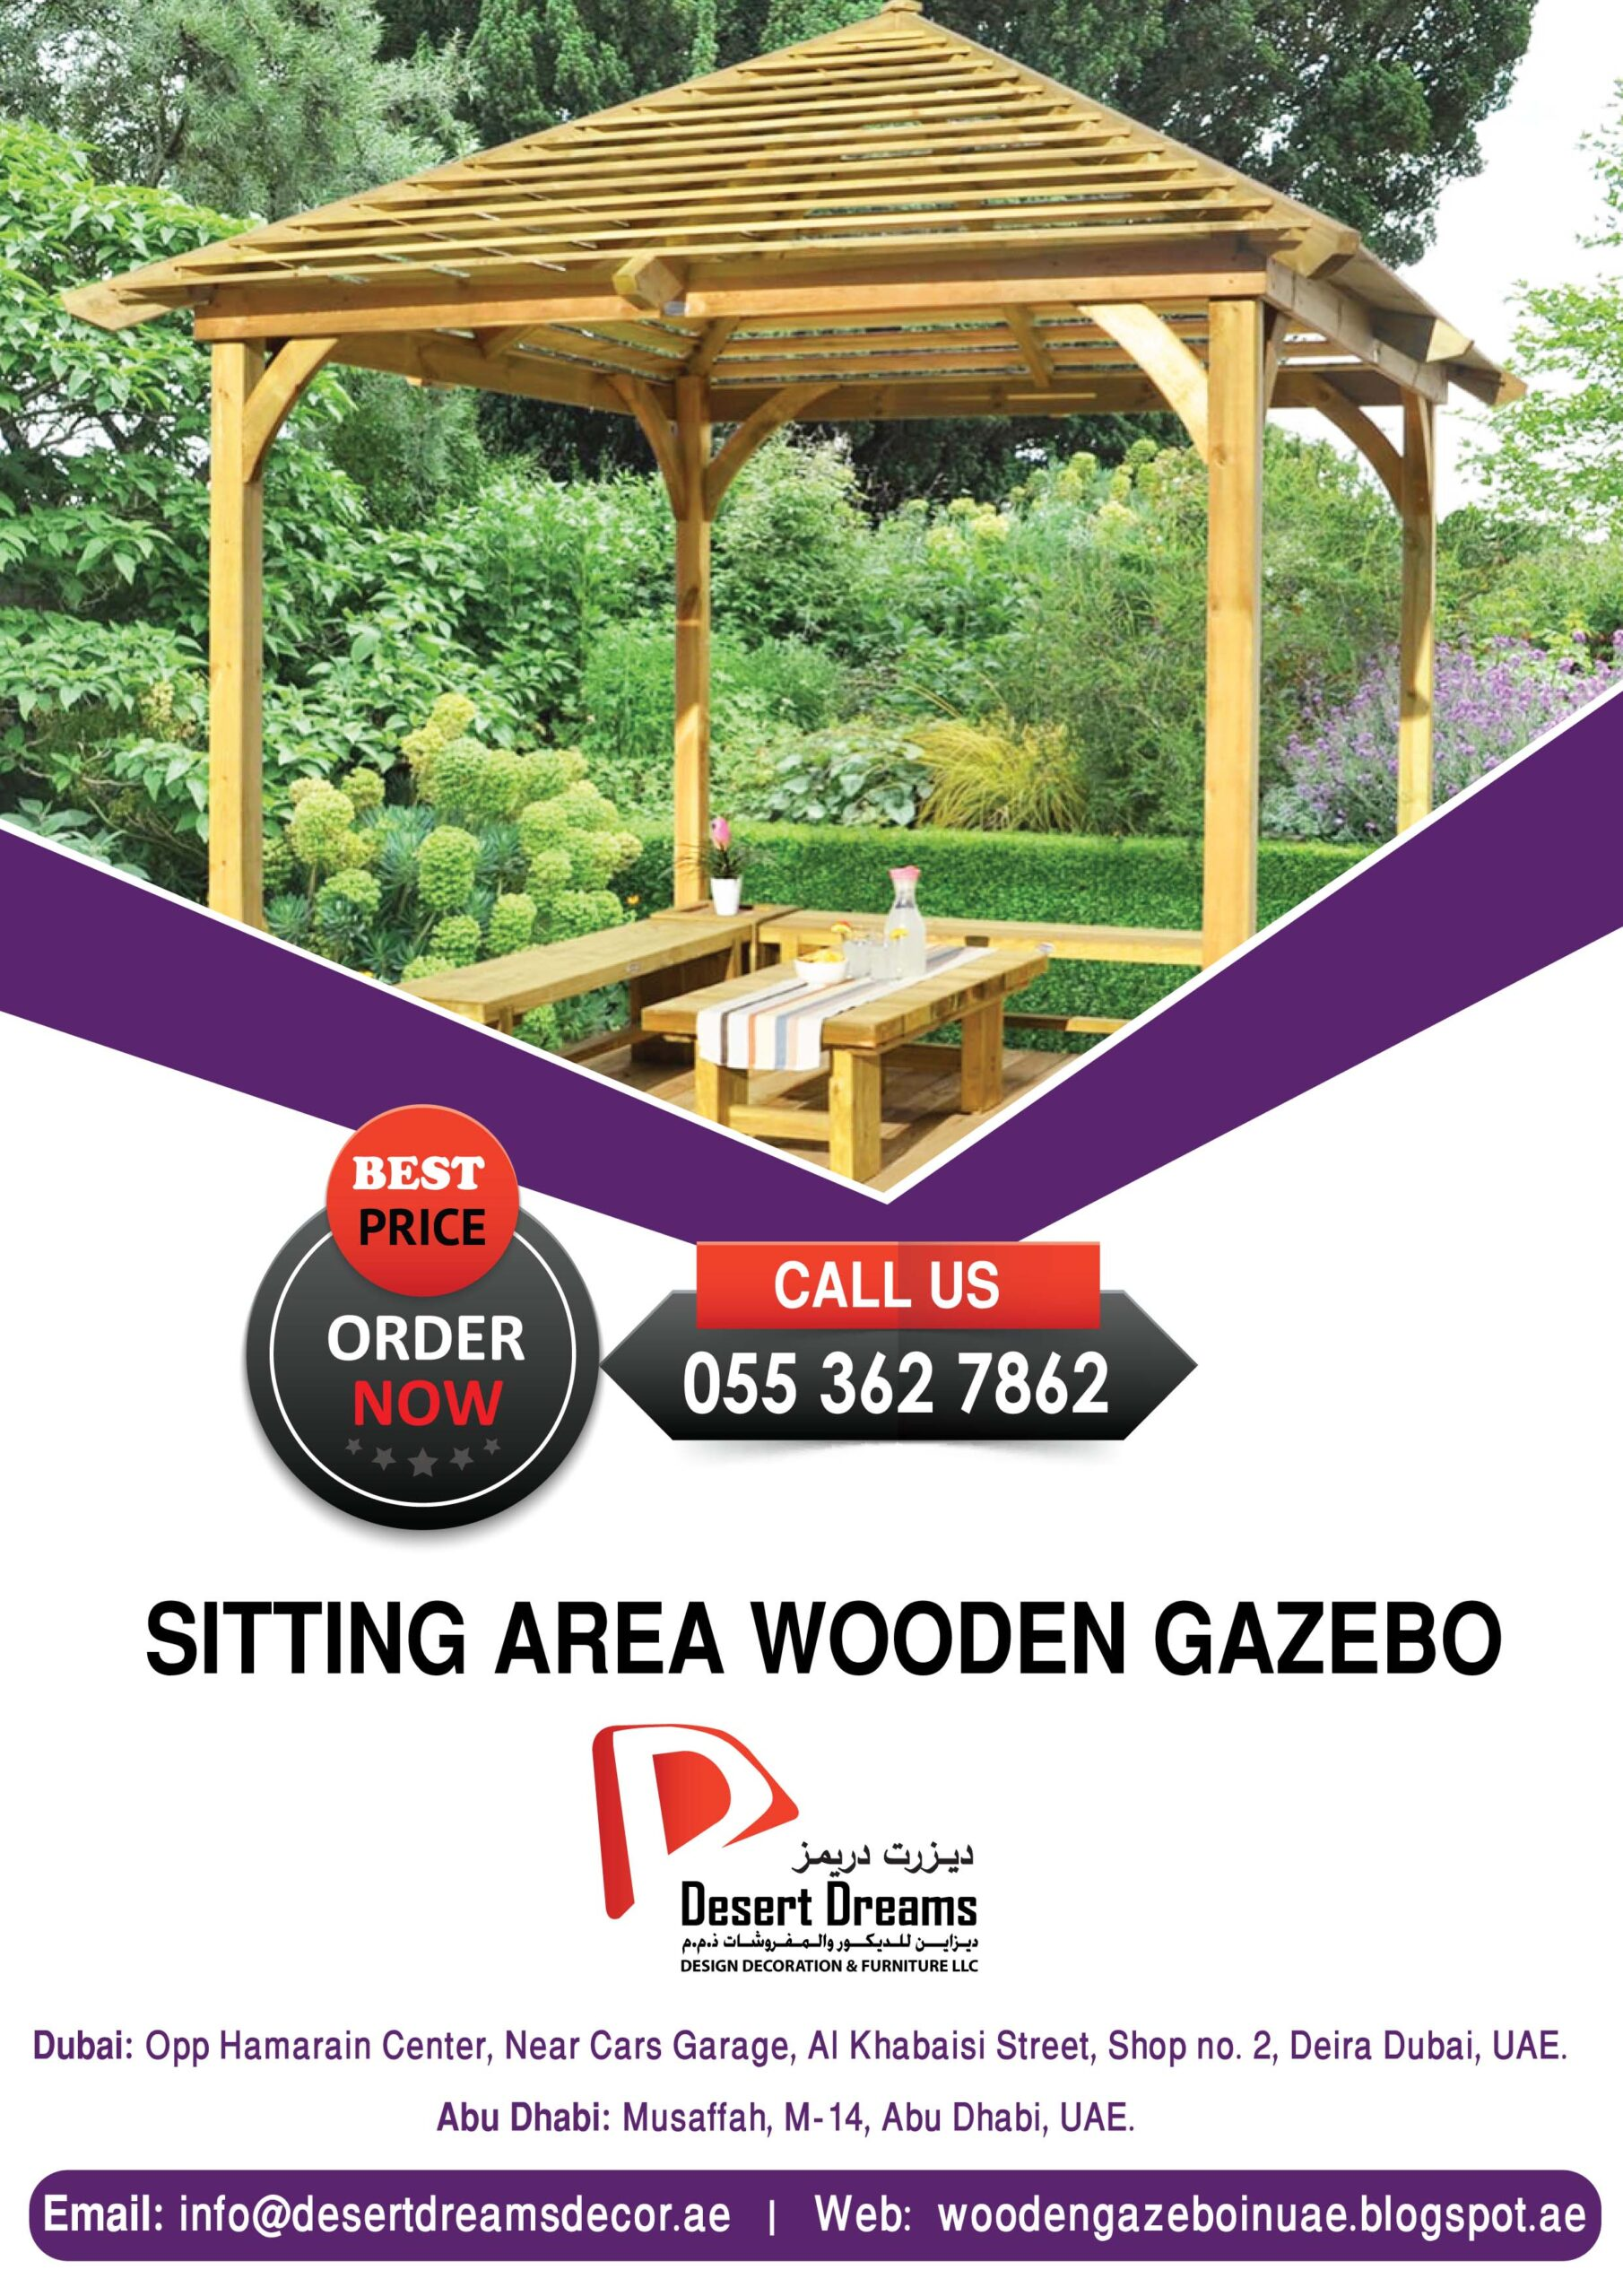 Sitting Area Wooden Gazebo in UAE.jpg